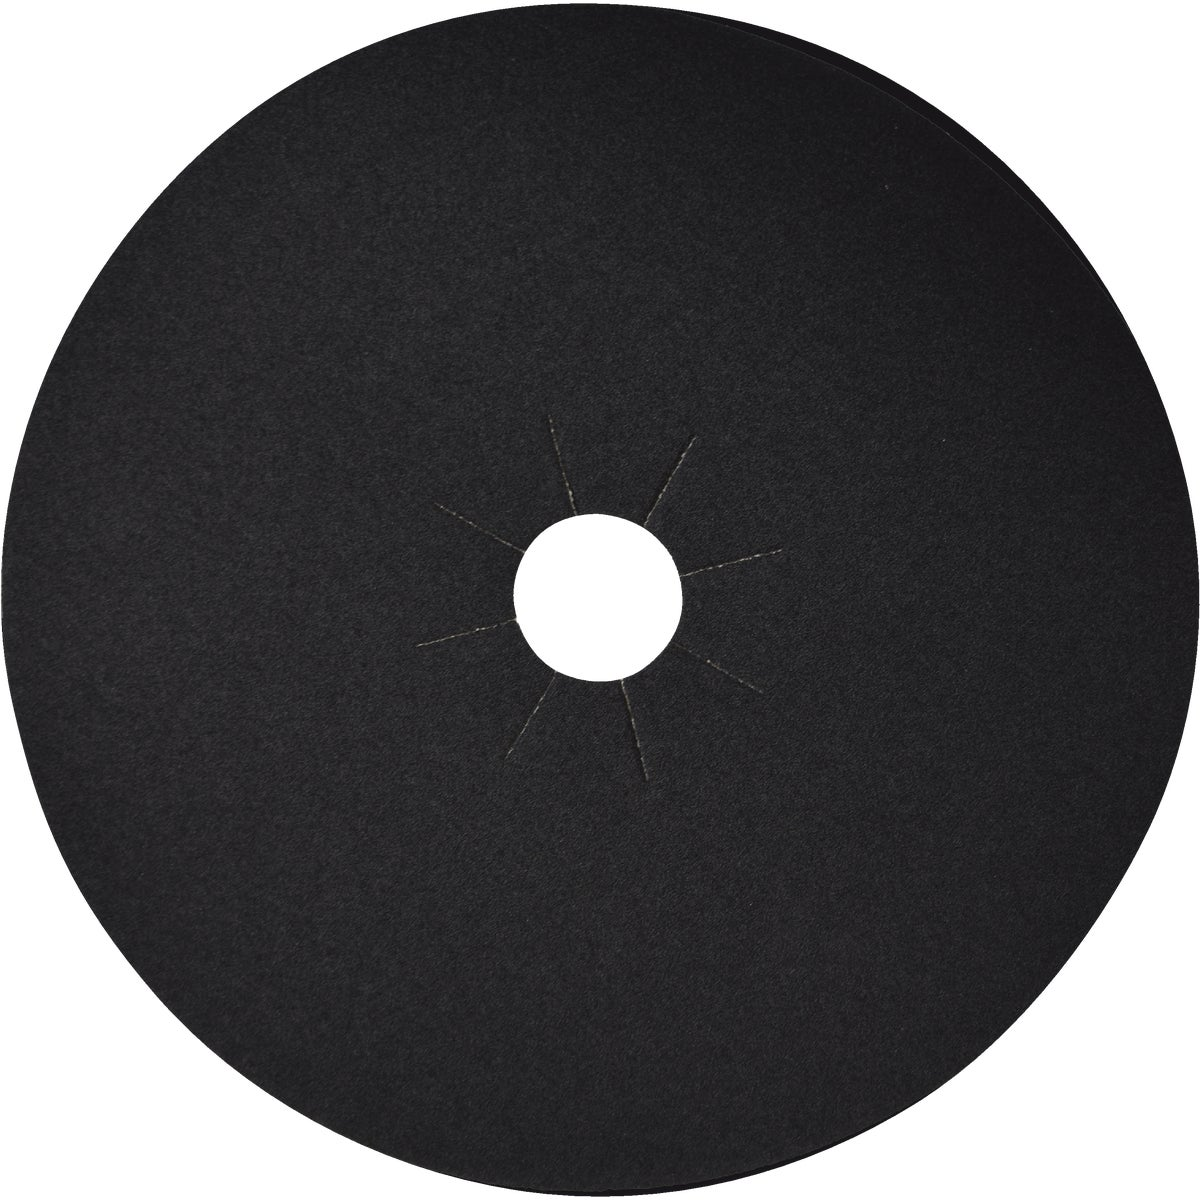 "17"" 60G FLR SANDING DISC - 007-817260 by Virginia Abrasives"